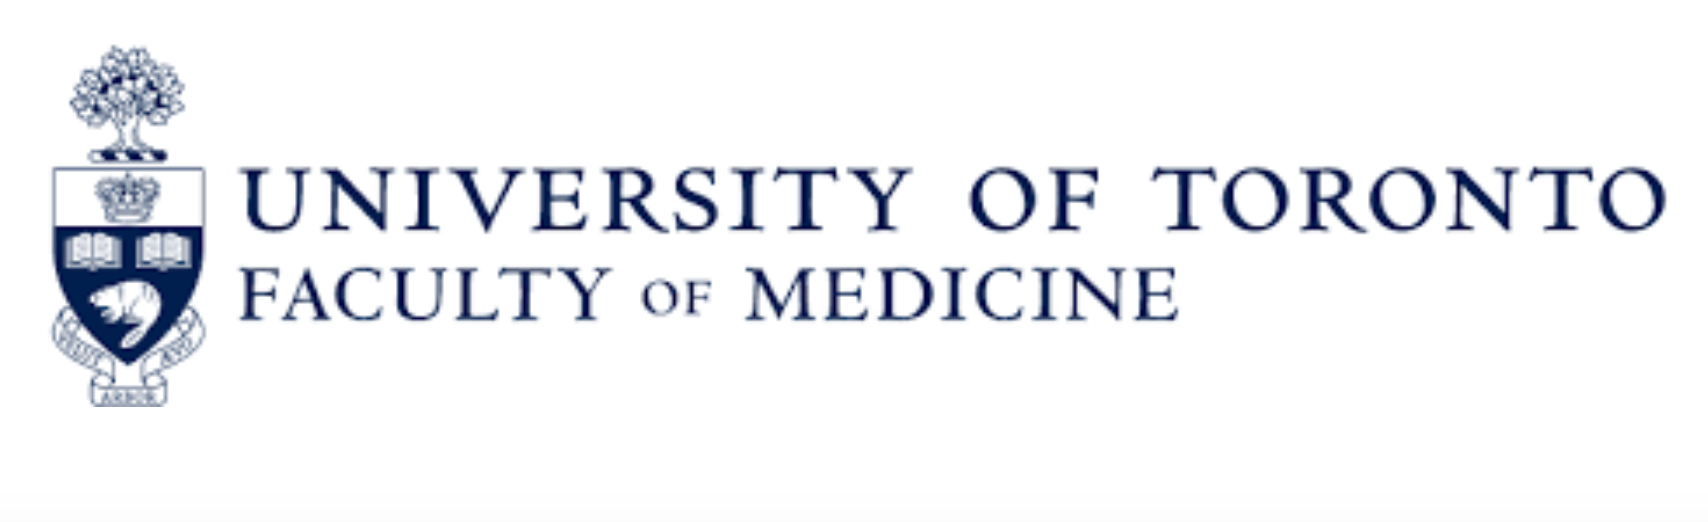 University of Toronto Faculty of Medicine